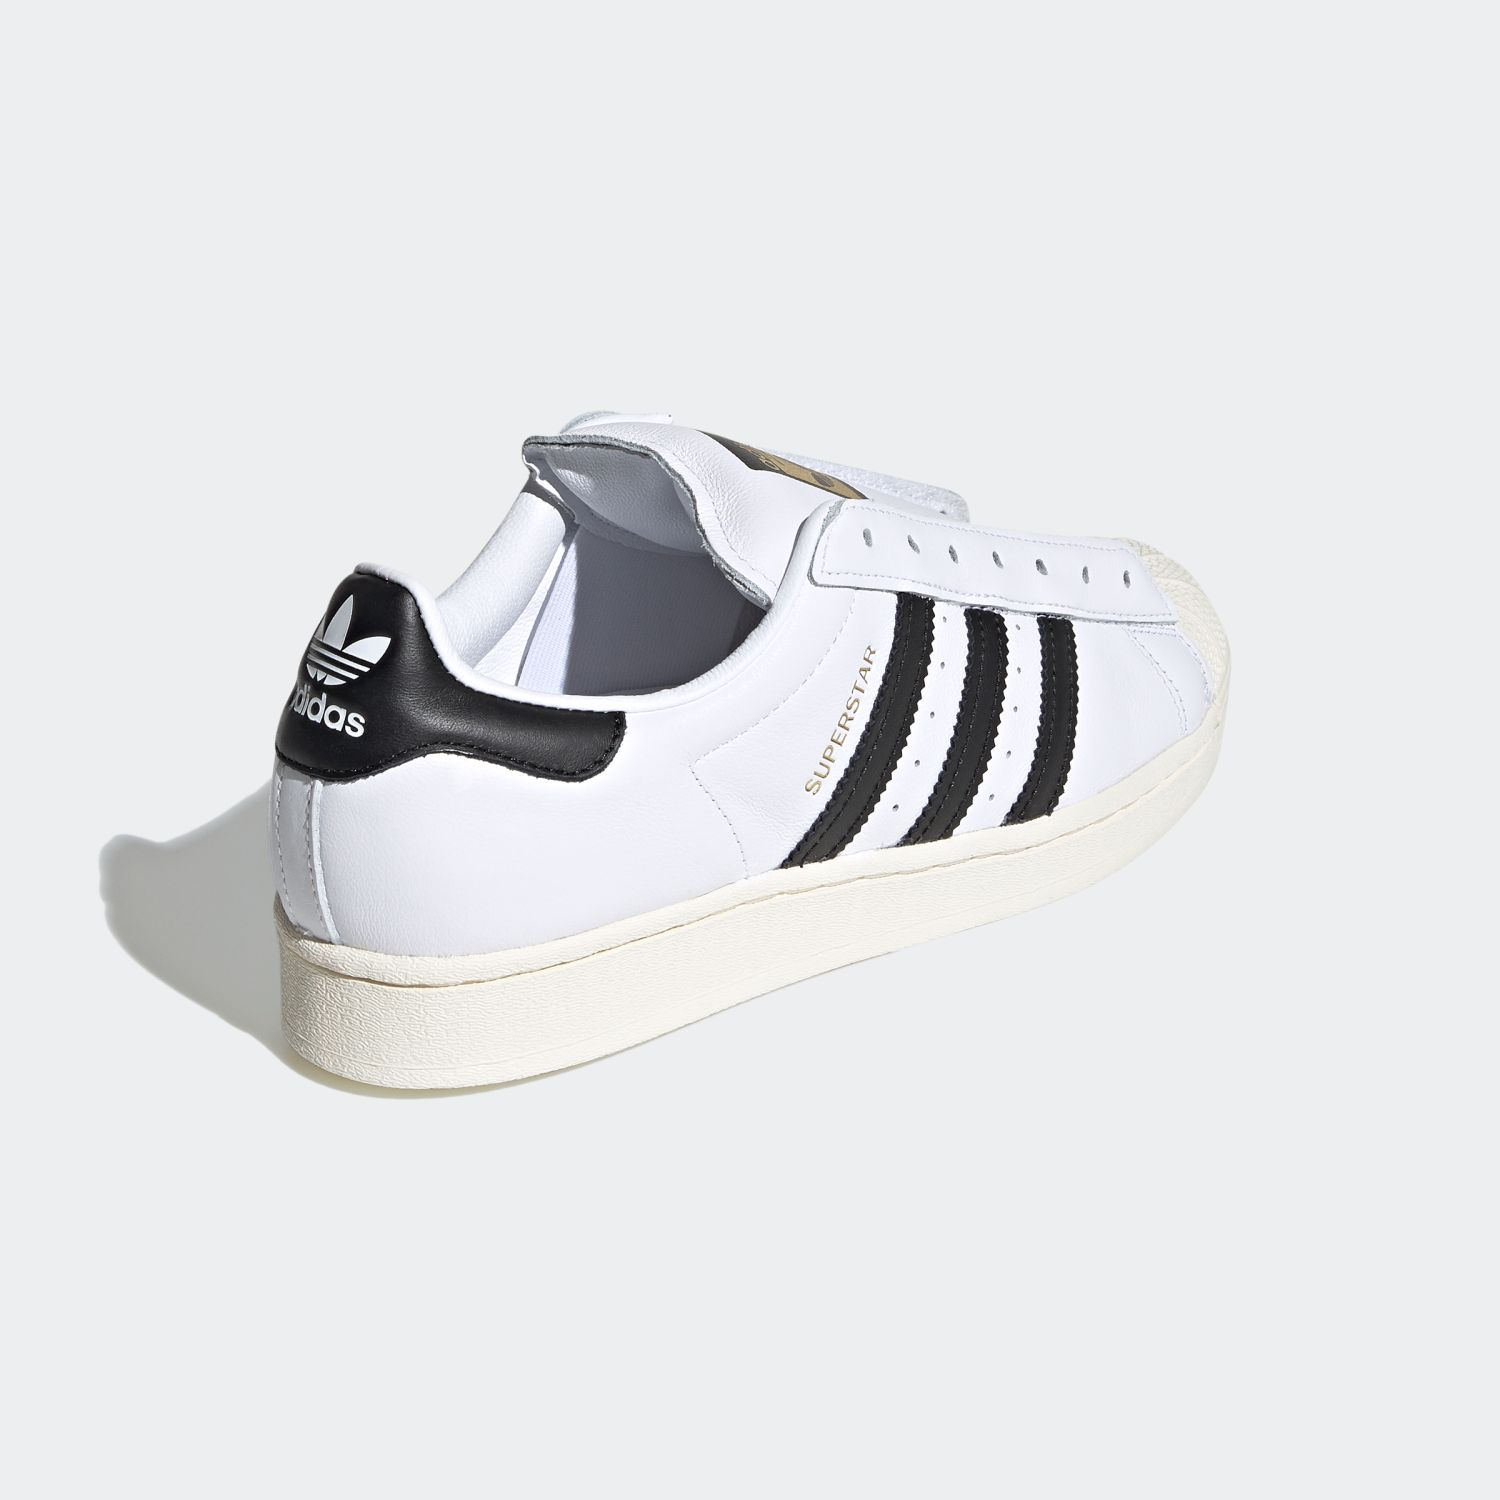 SUPERSTAR x Adidas Laceless White Black [5]